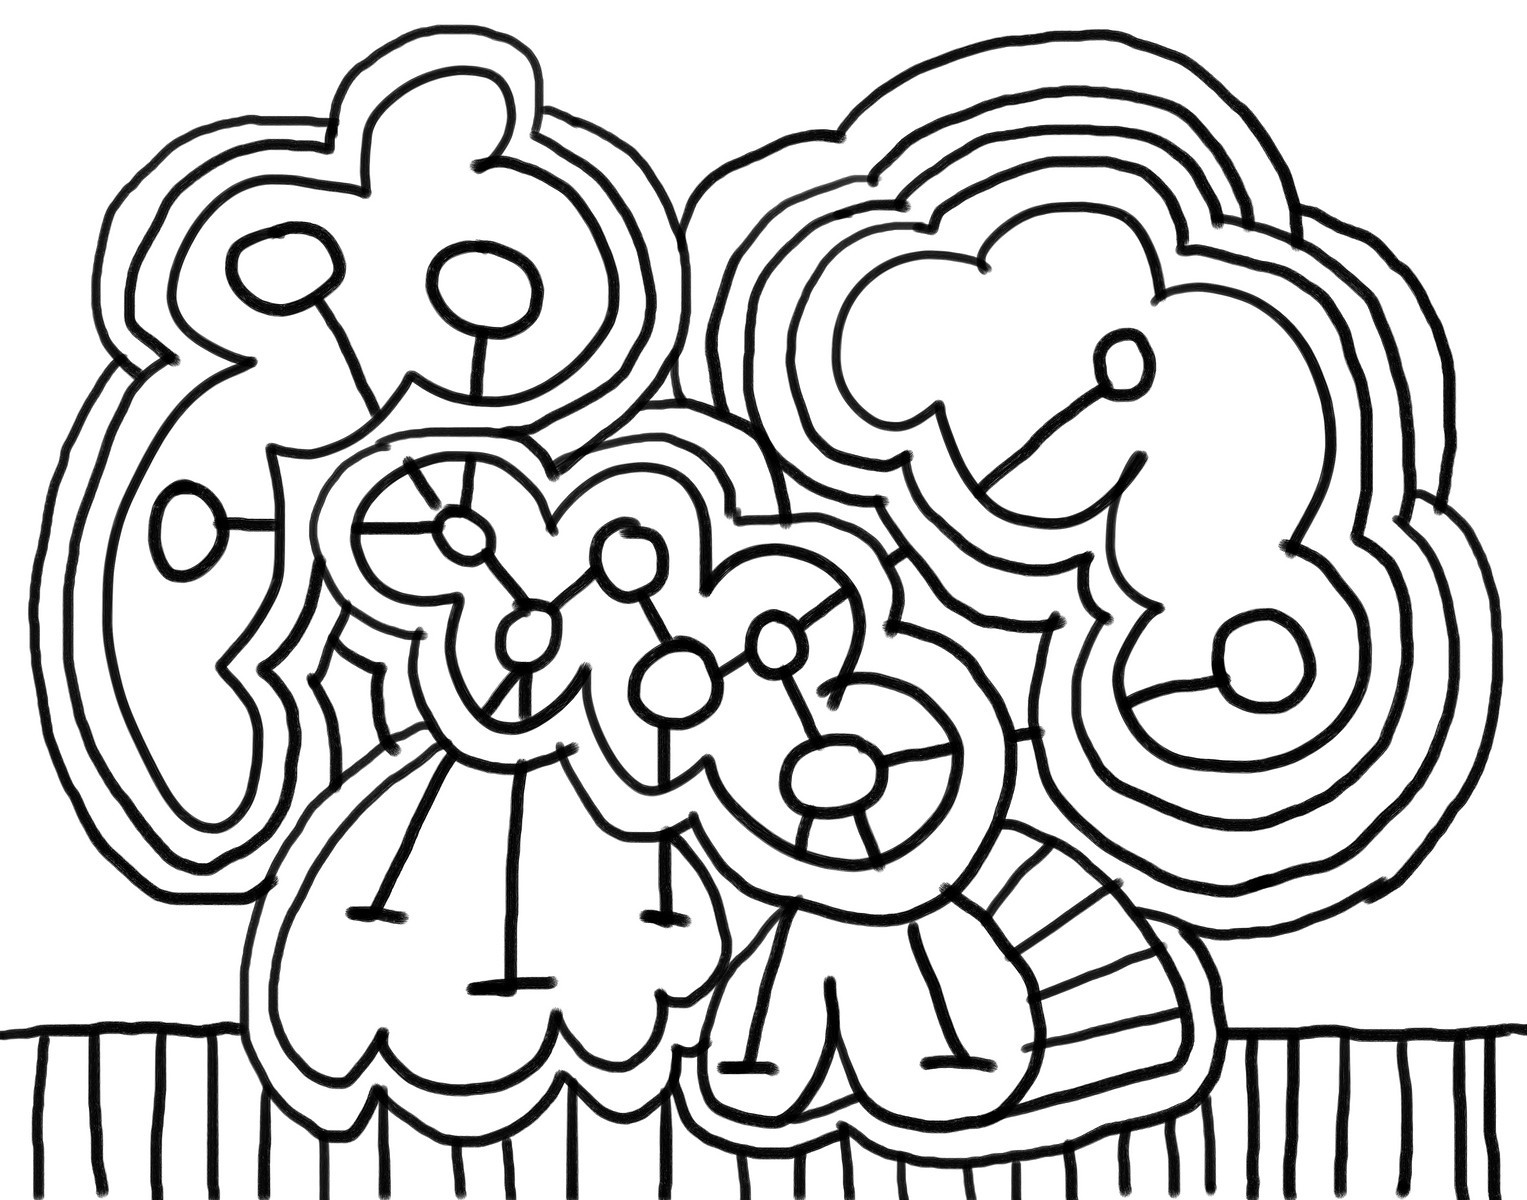 Turn Your Drawings And Pictures Into Online Coloring Pages